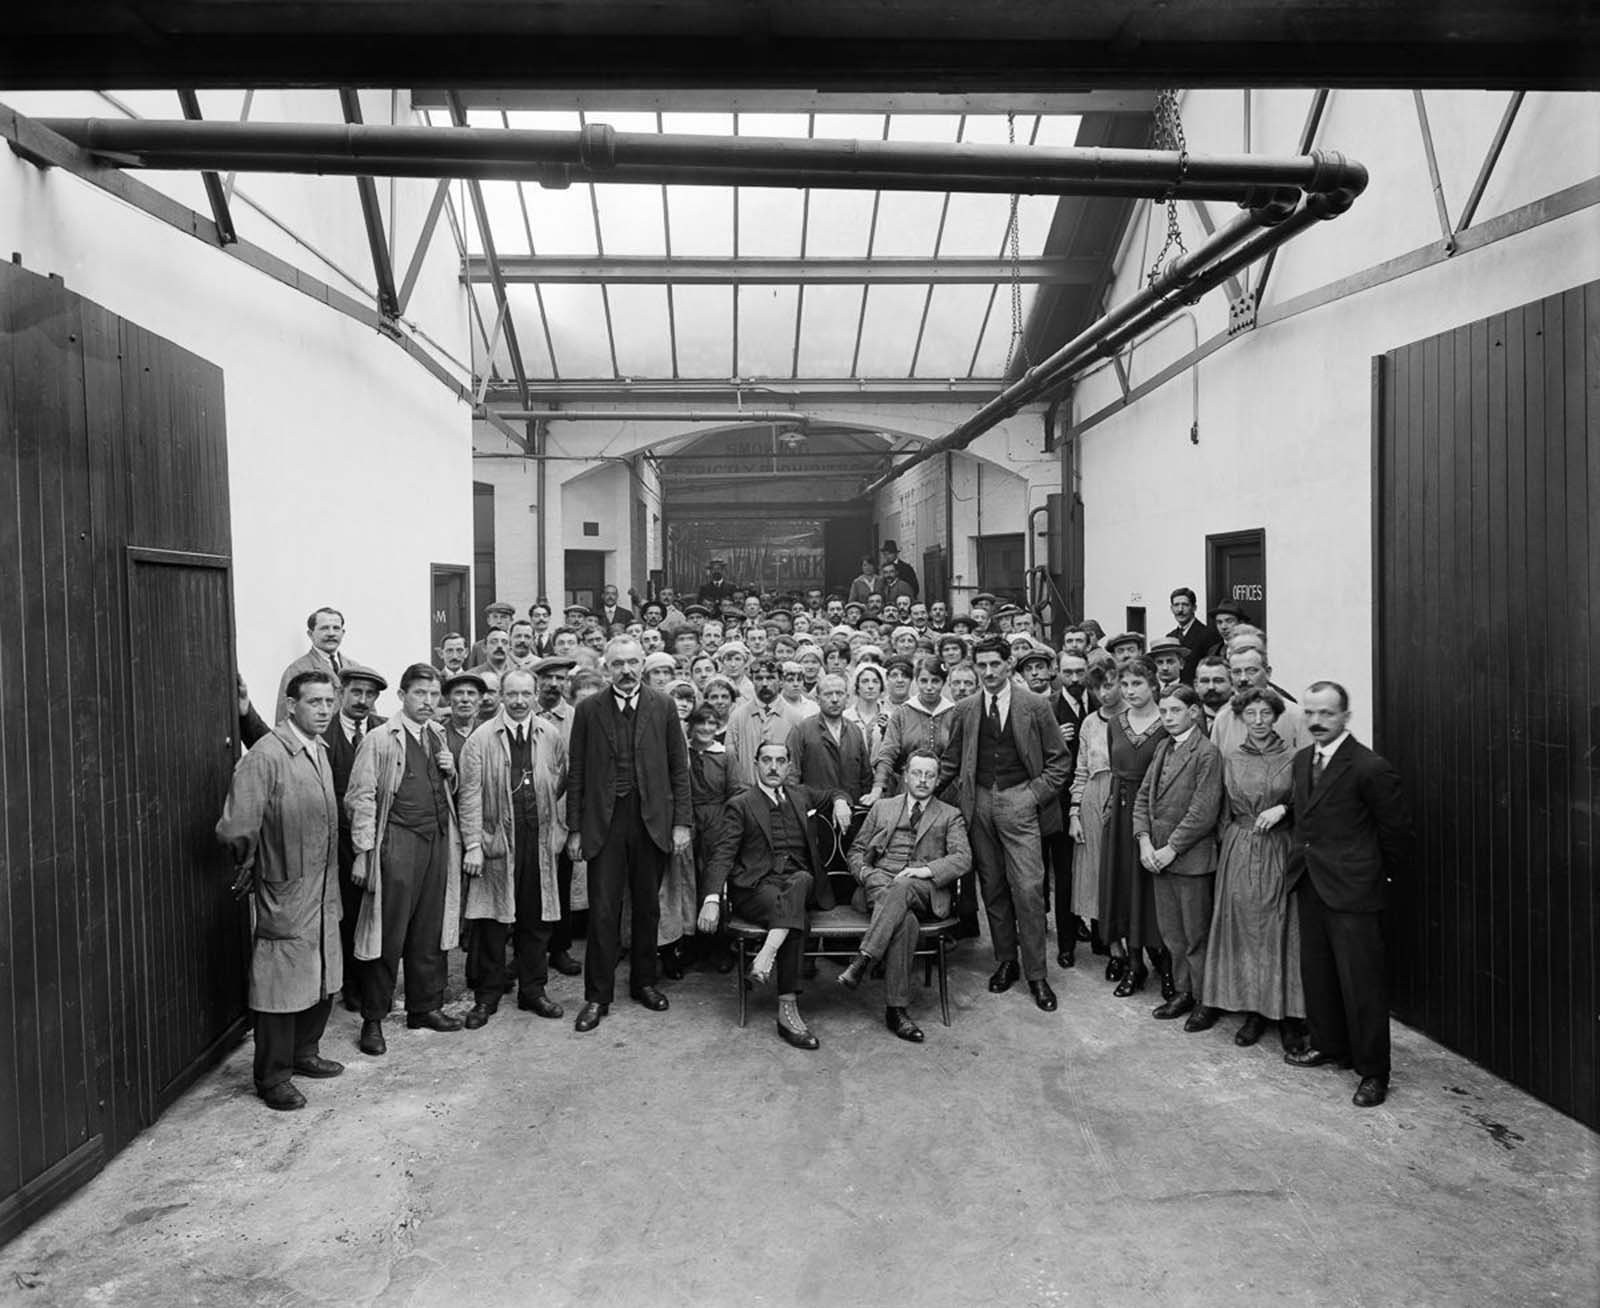 A group portrait of the managers and workers in the Belgian Munition Works in London, which employed Belgian refugees to manufacture grenades and artillery shells for the war effort. 1918.